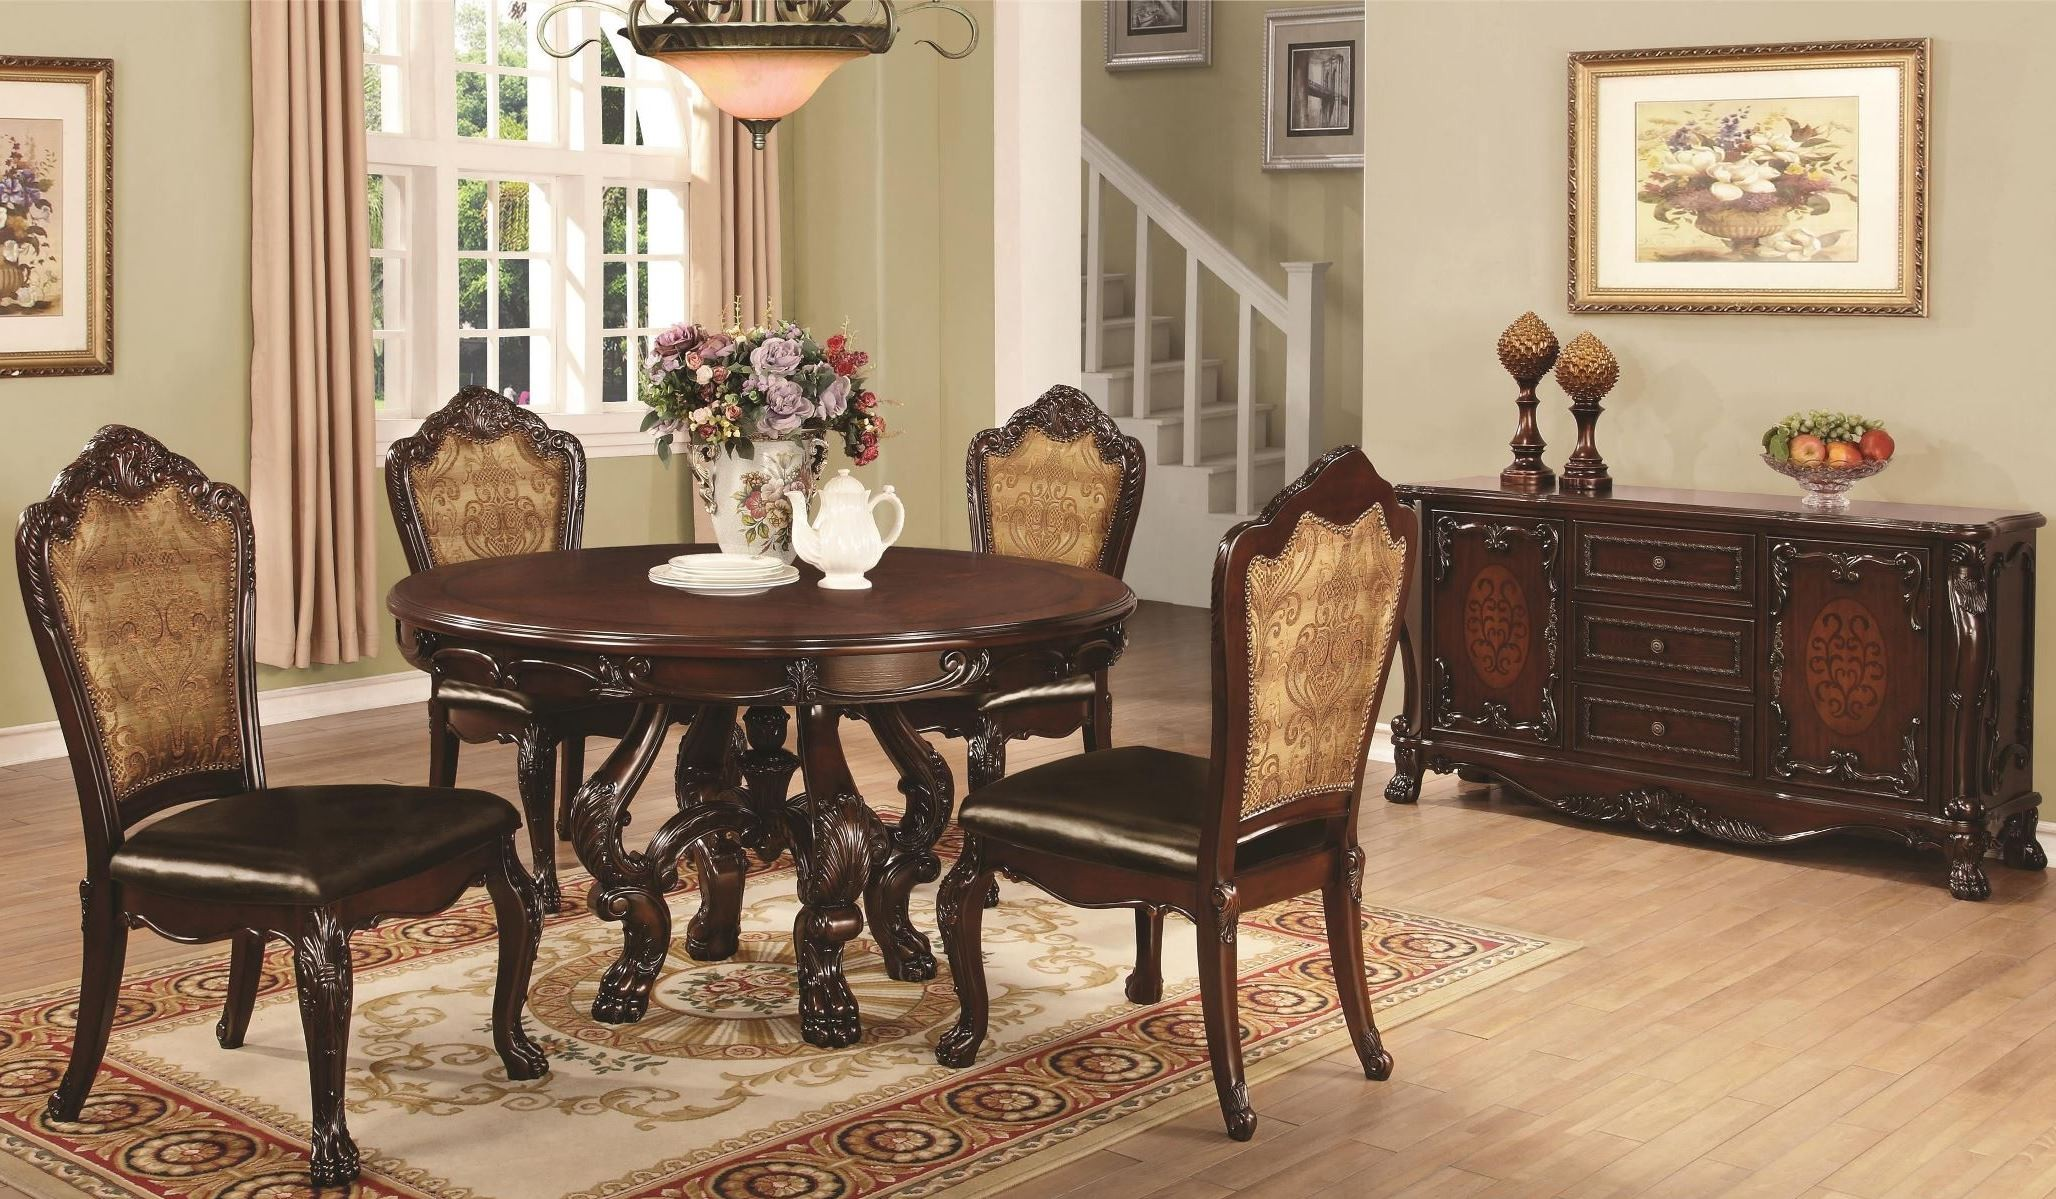 Abigail cherry round pedestal dining room set from coaster for Cherry dining room set